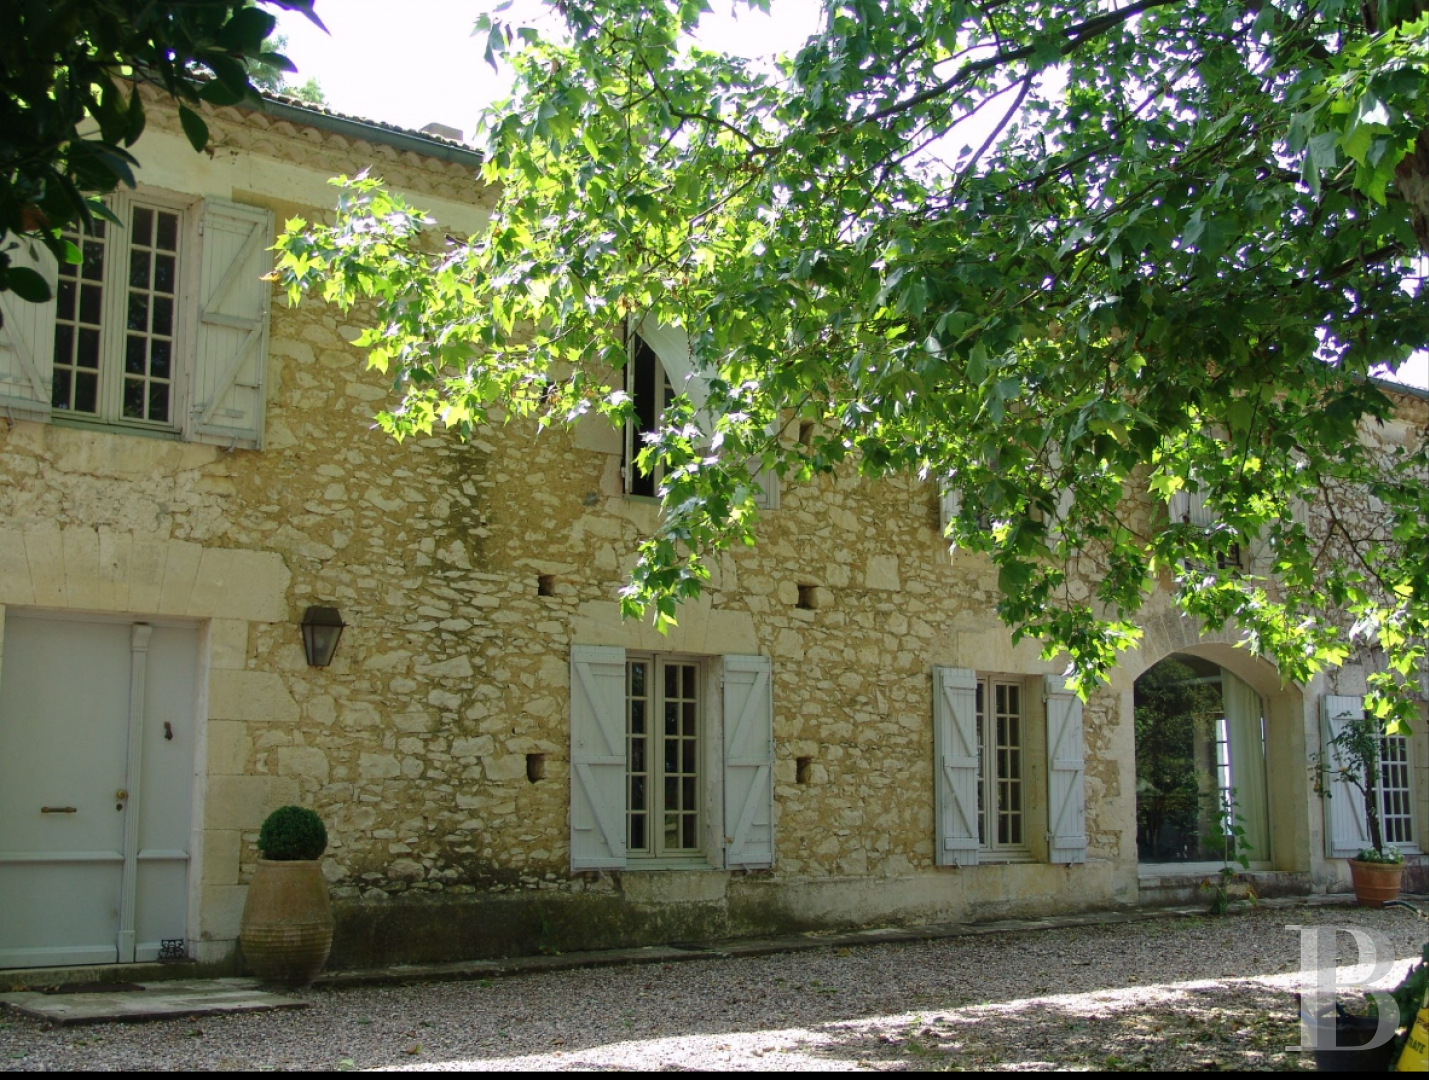 property for sale France midi pyrenees residences farms - 3 zoom